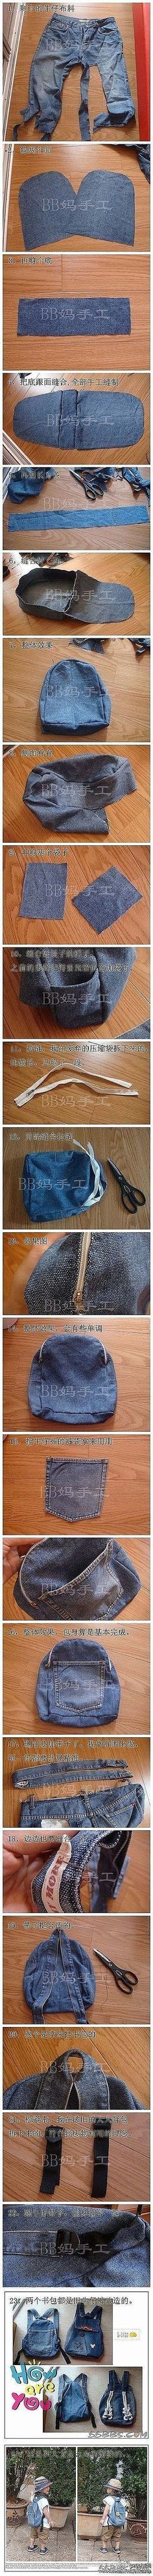 The handmade DIY [life creative】 denim backpack